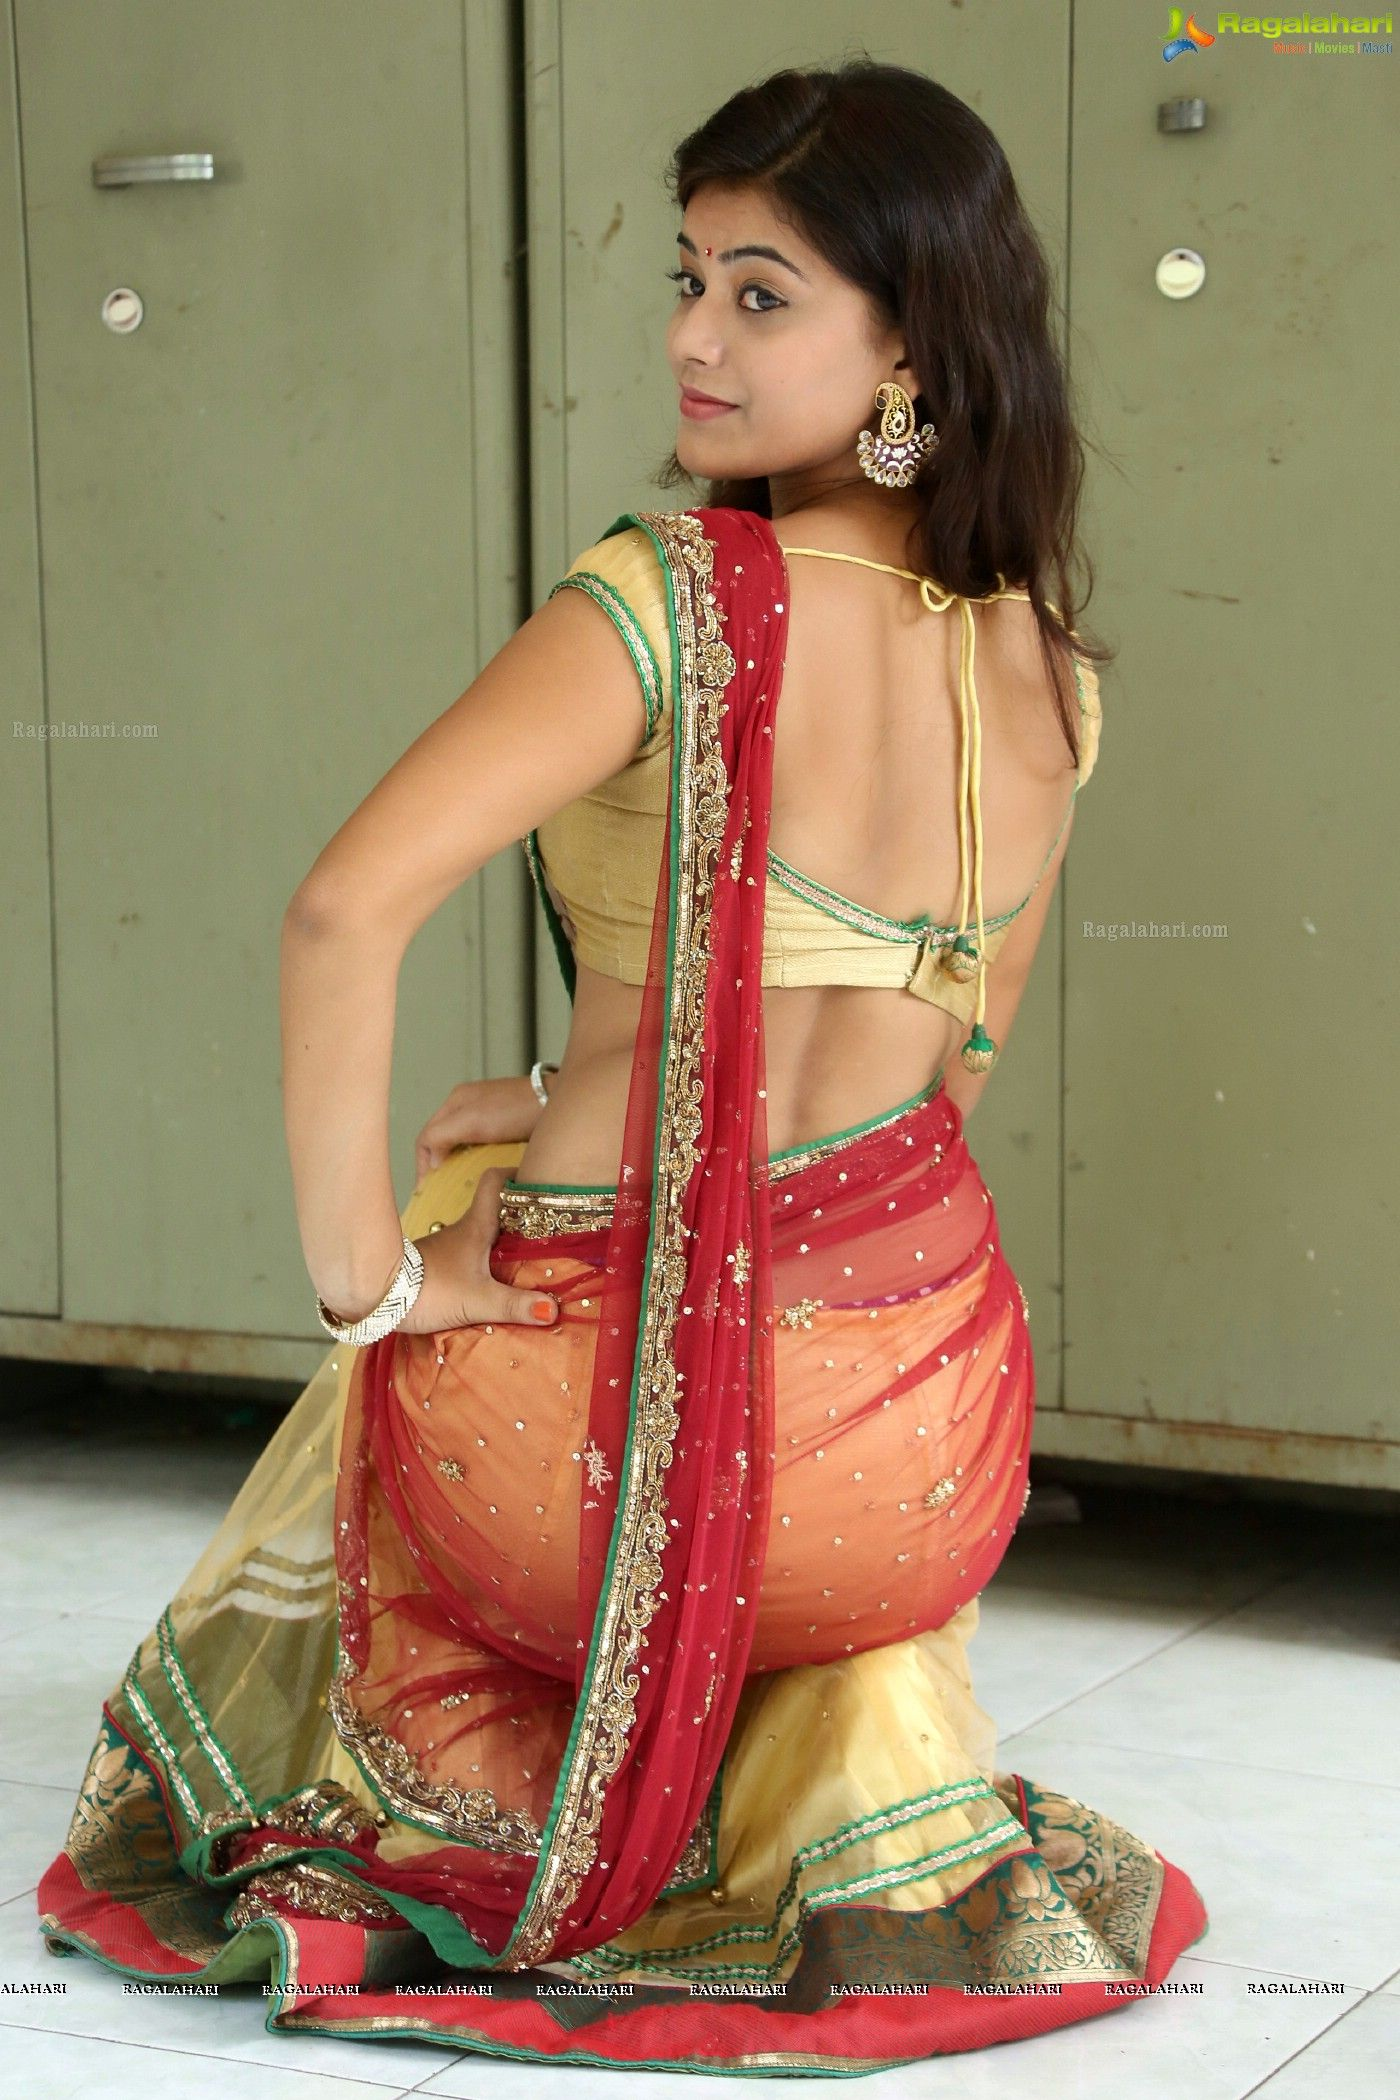 Ass in saree images